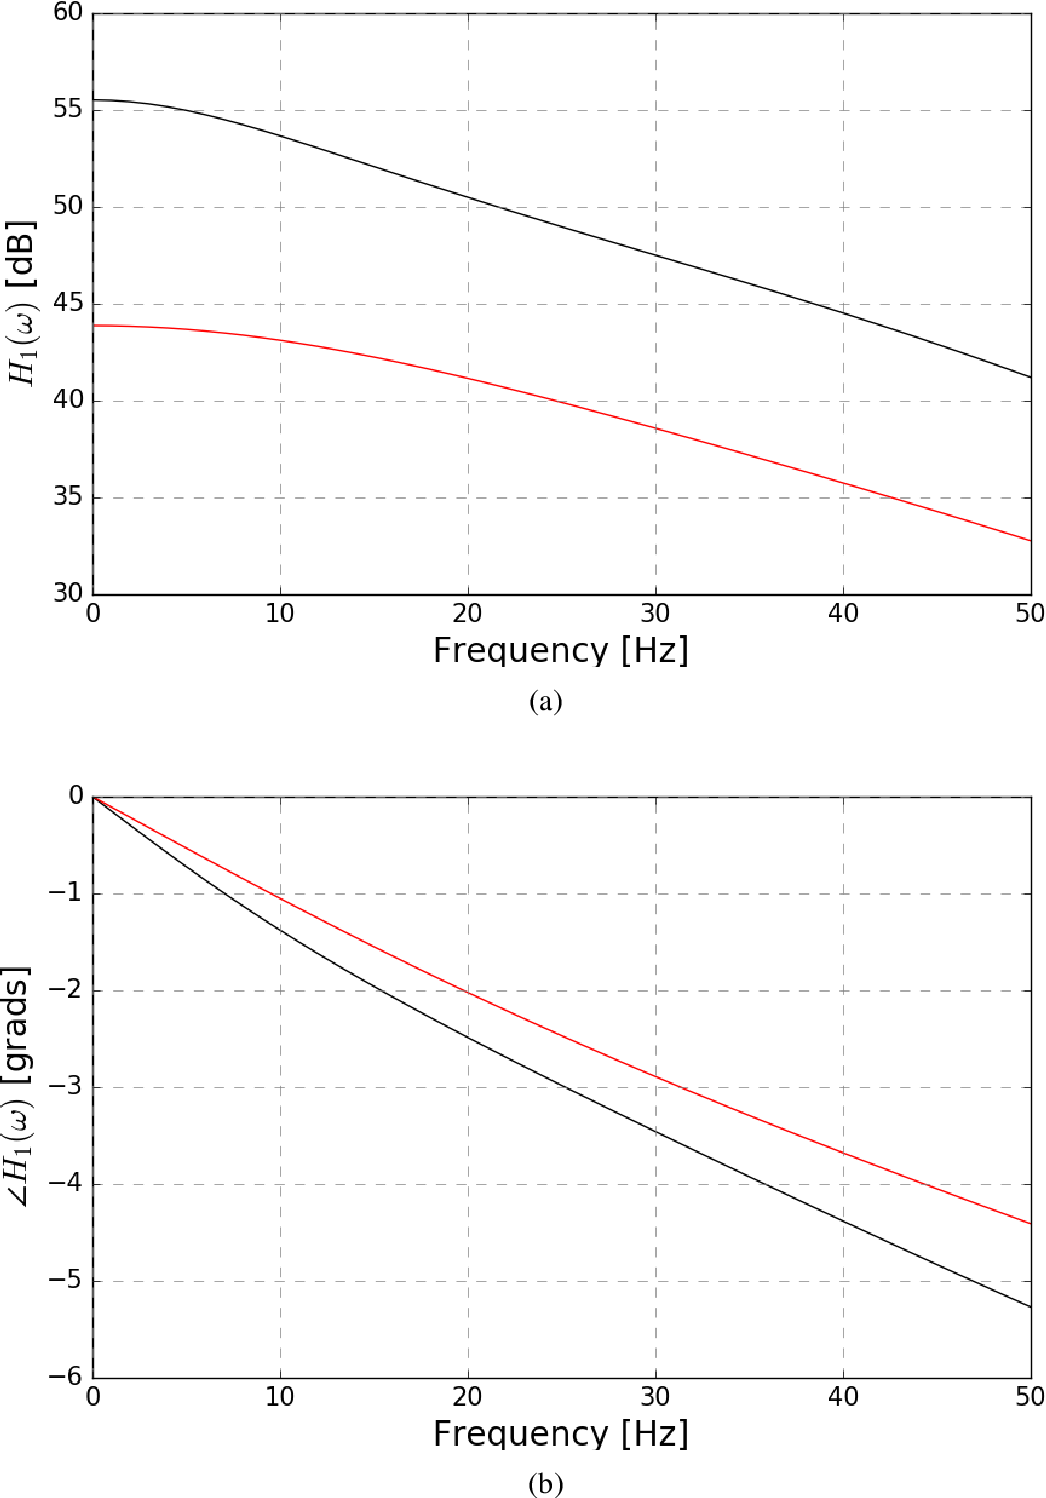 Fig. 5.3 First Order Generalised Frequency Response Functions. (a) Comparison between the magnitude of the wild-type (black) and mutant (red) NARX filters. (b) Comparison of the phase profile for the same two filters.